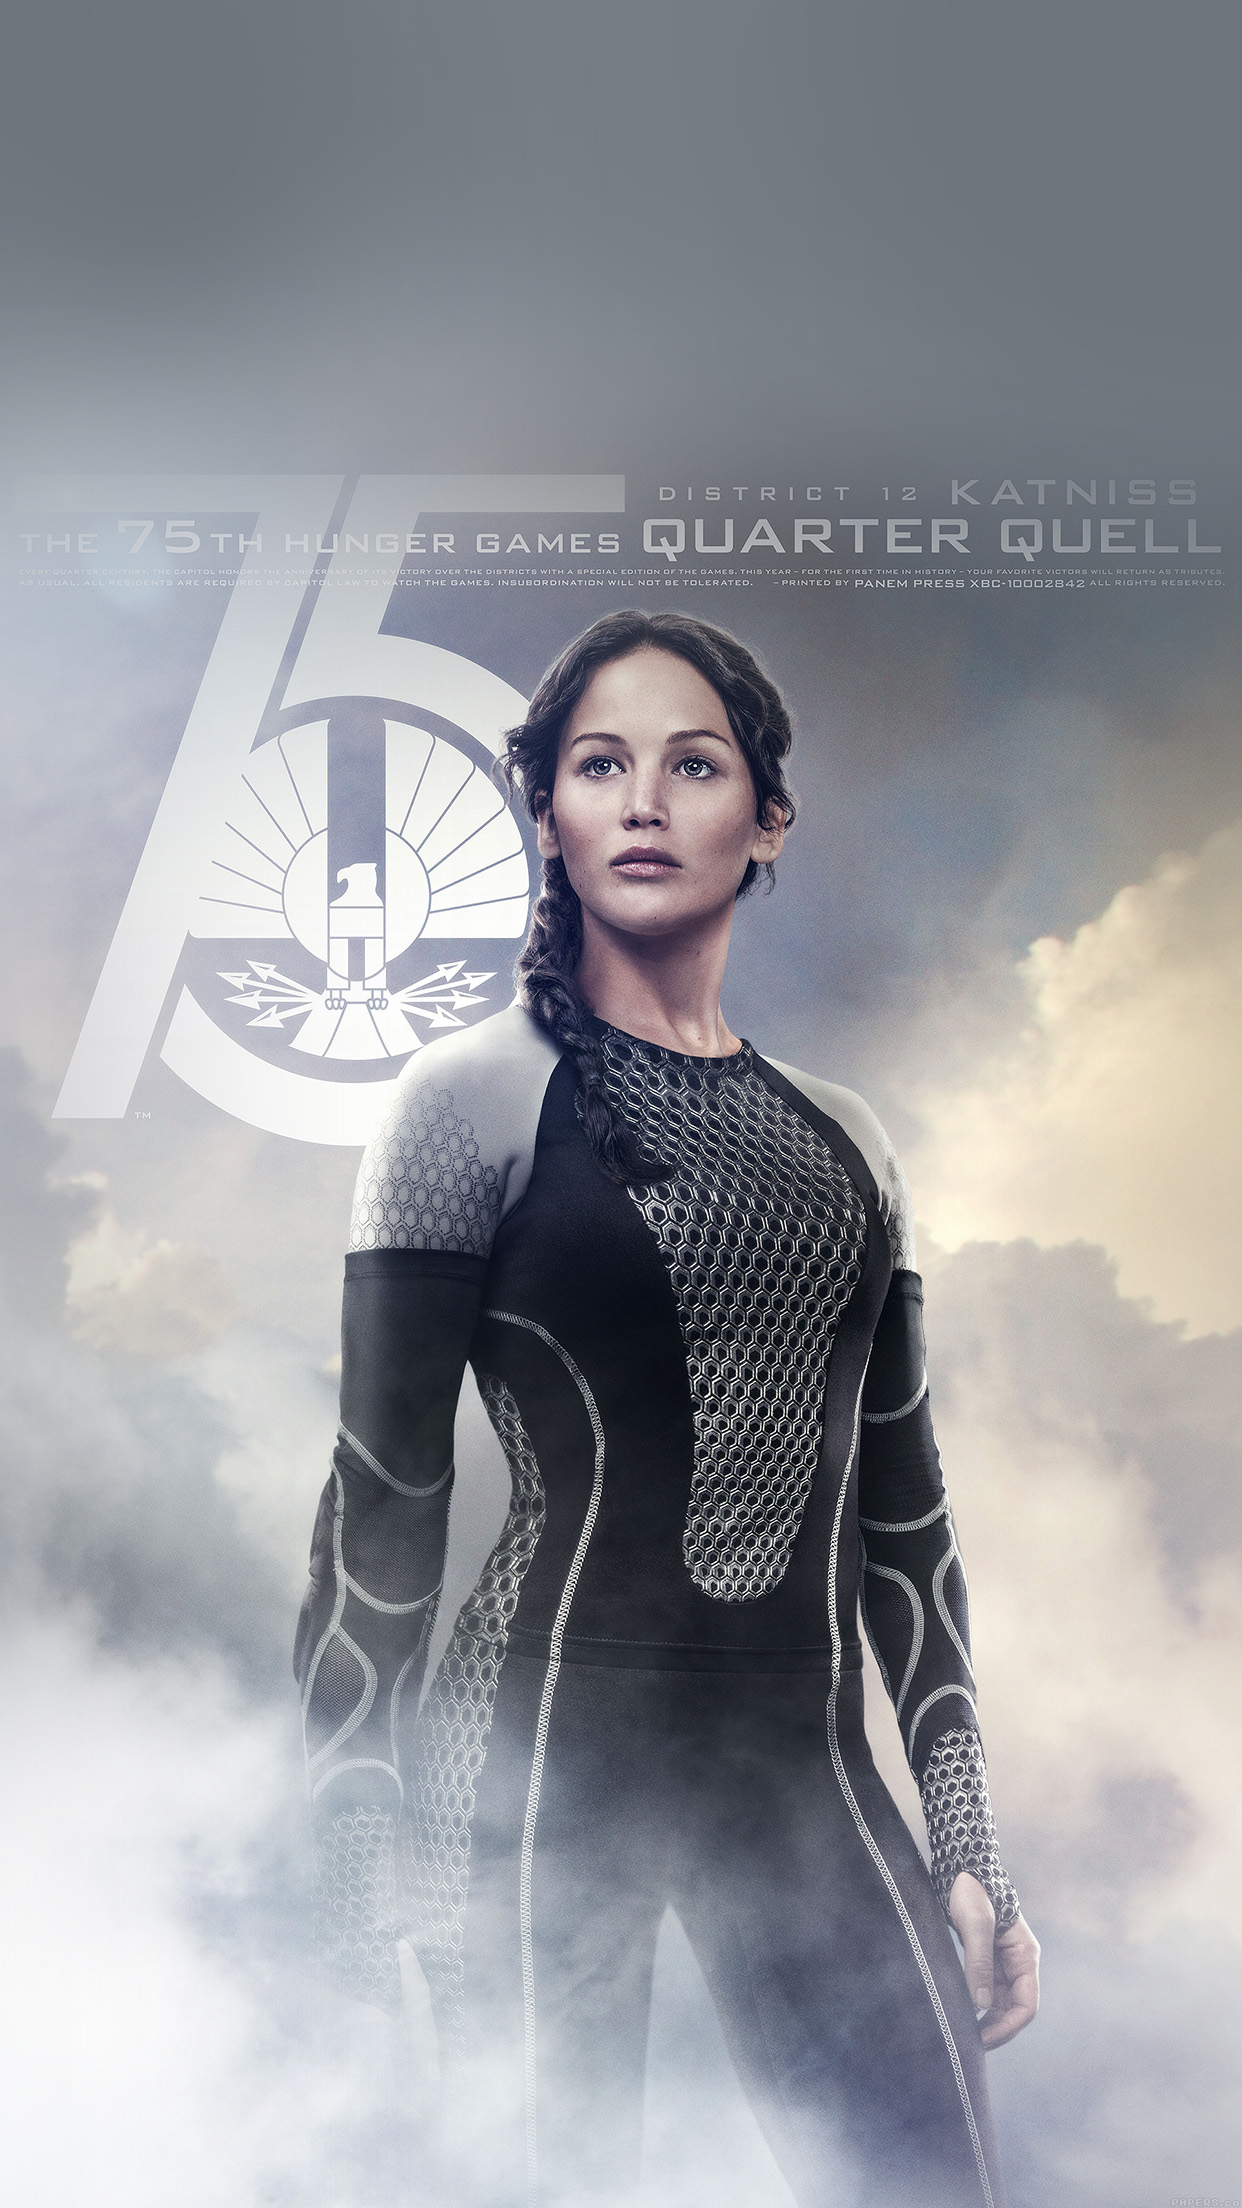 papers.co | iphone wallpaper | he75-hunger-game-jennifer-lawrence